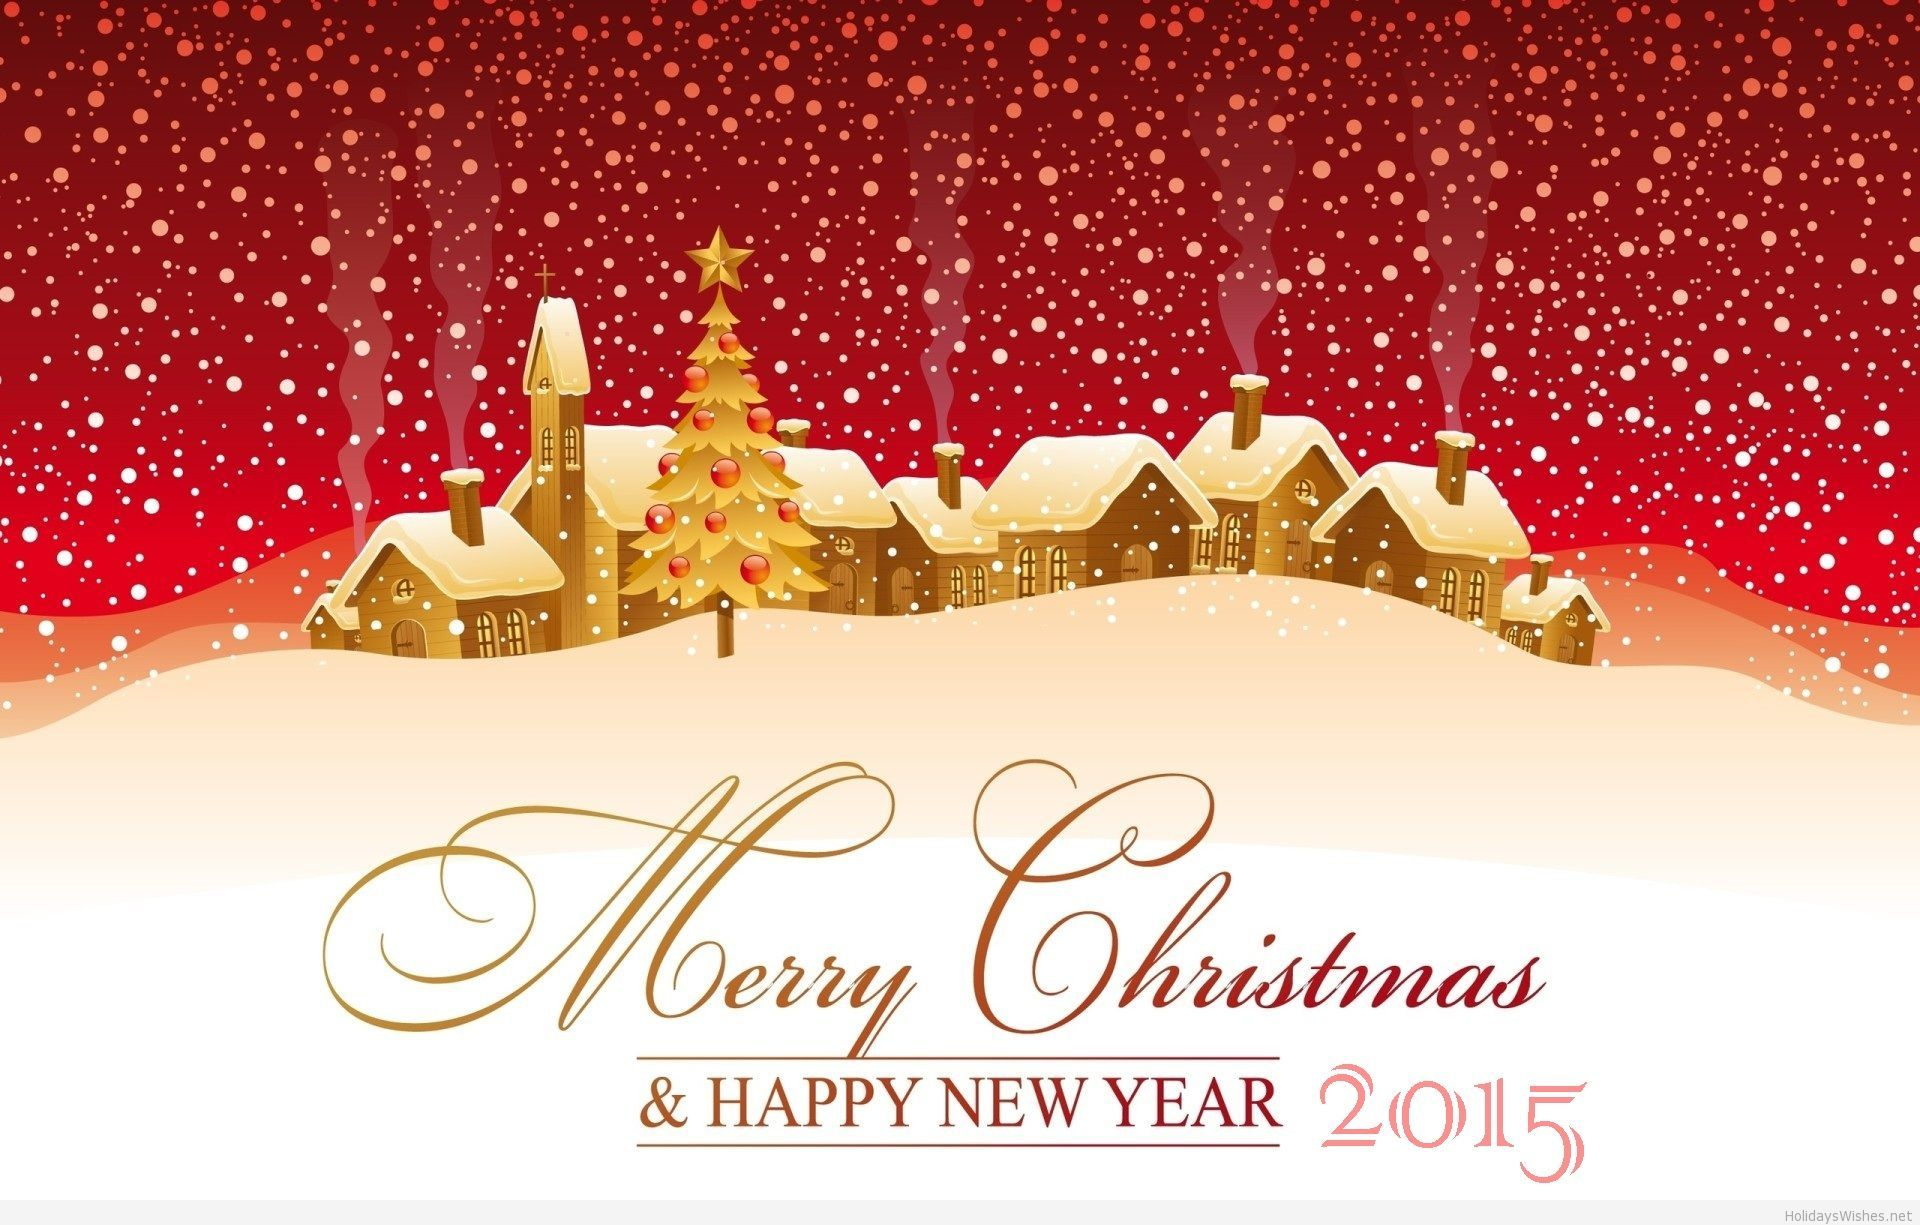 Happy New Year 2015 Pic Holidays Wishes Holiday Board